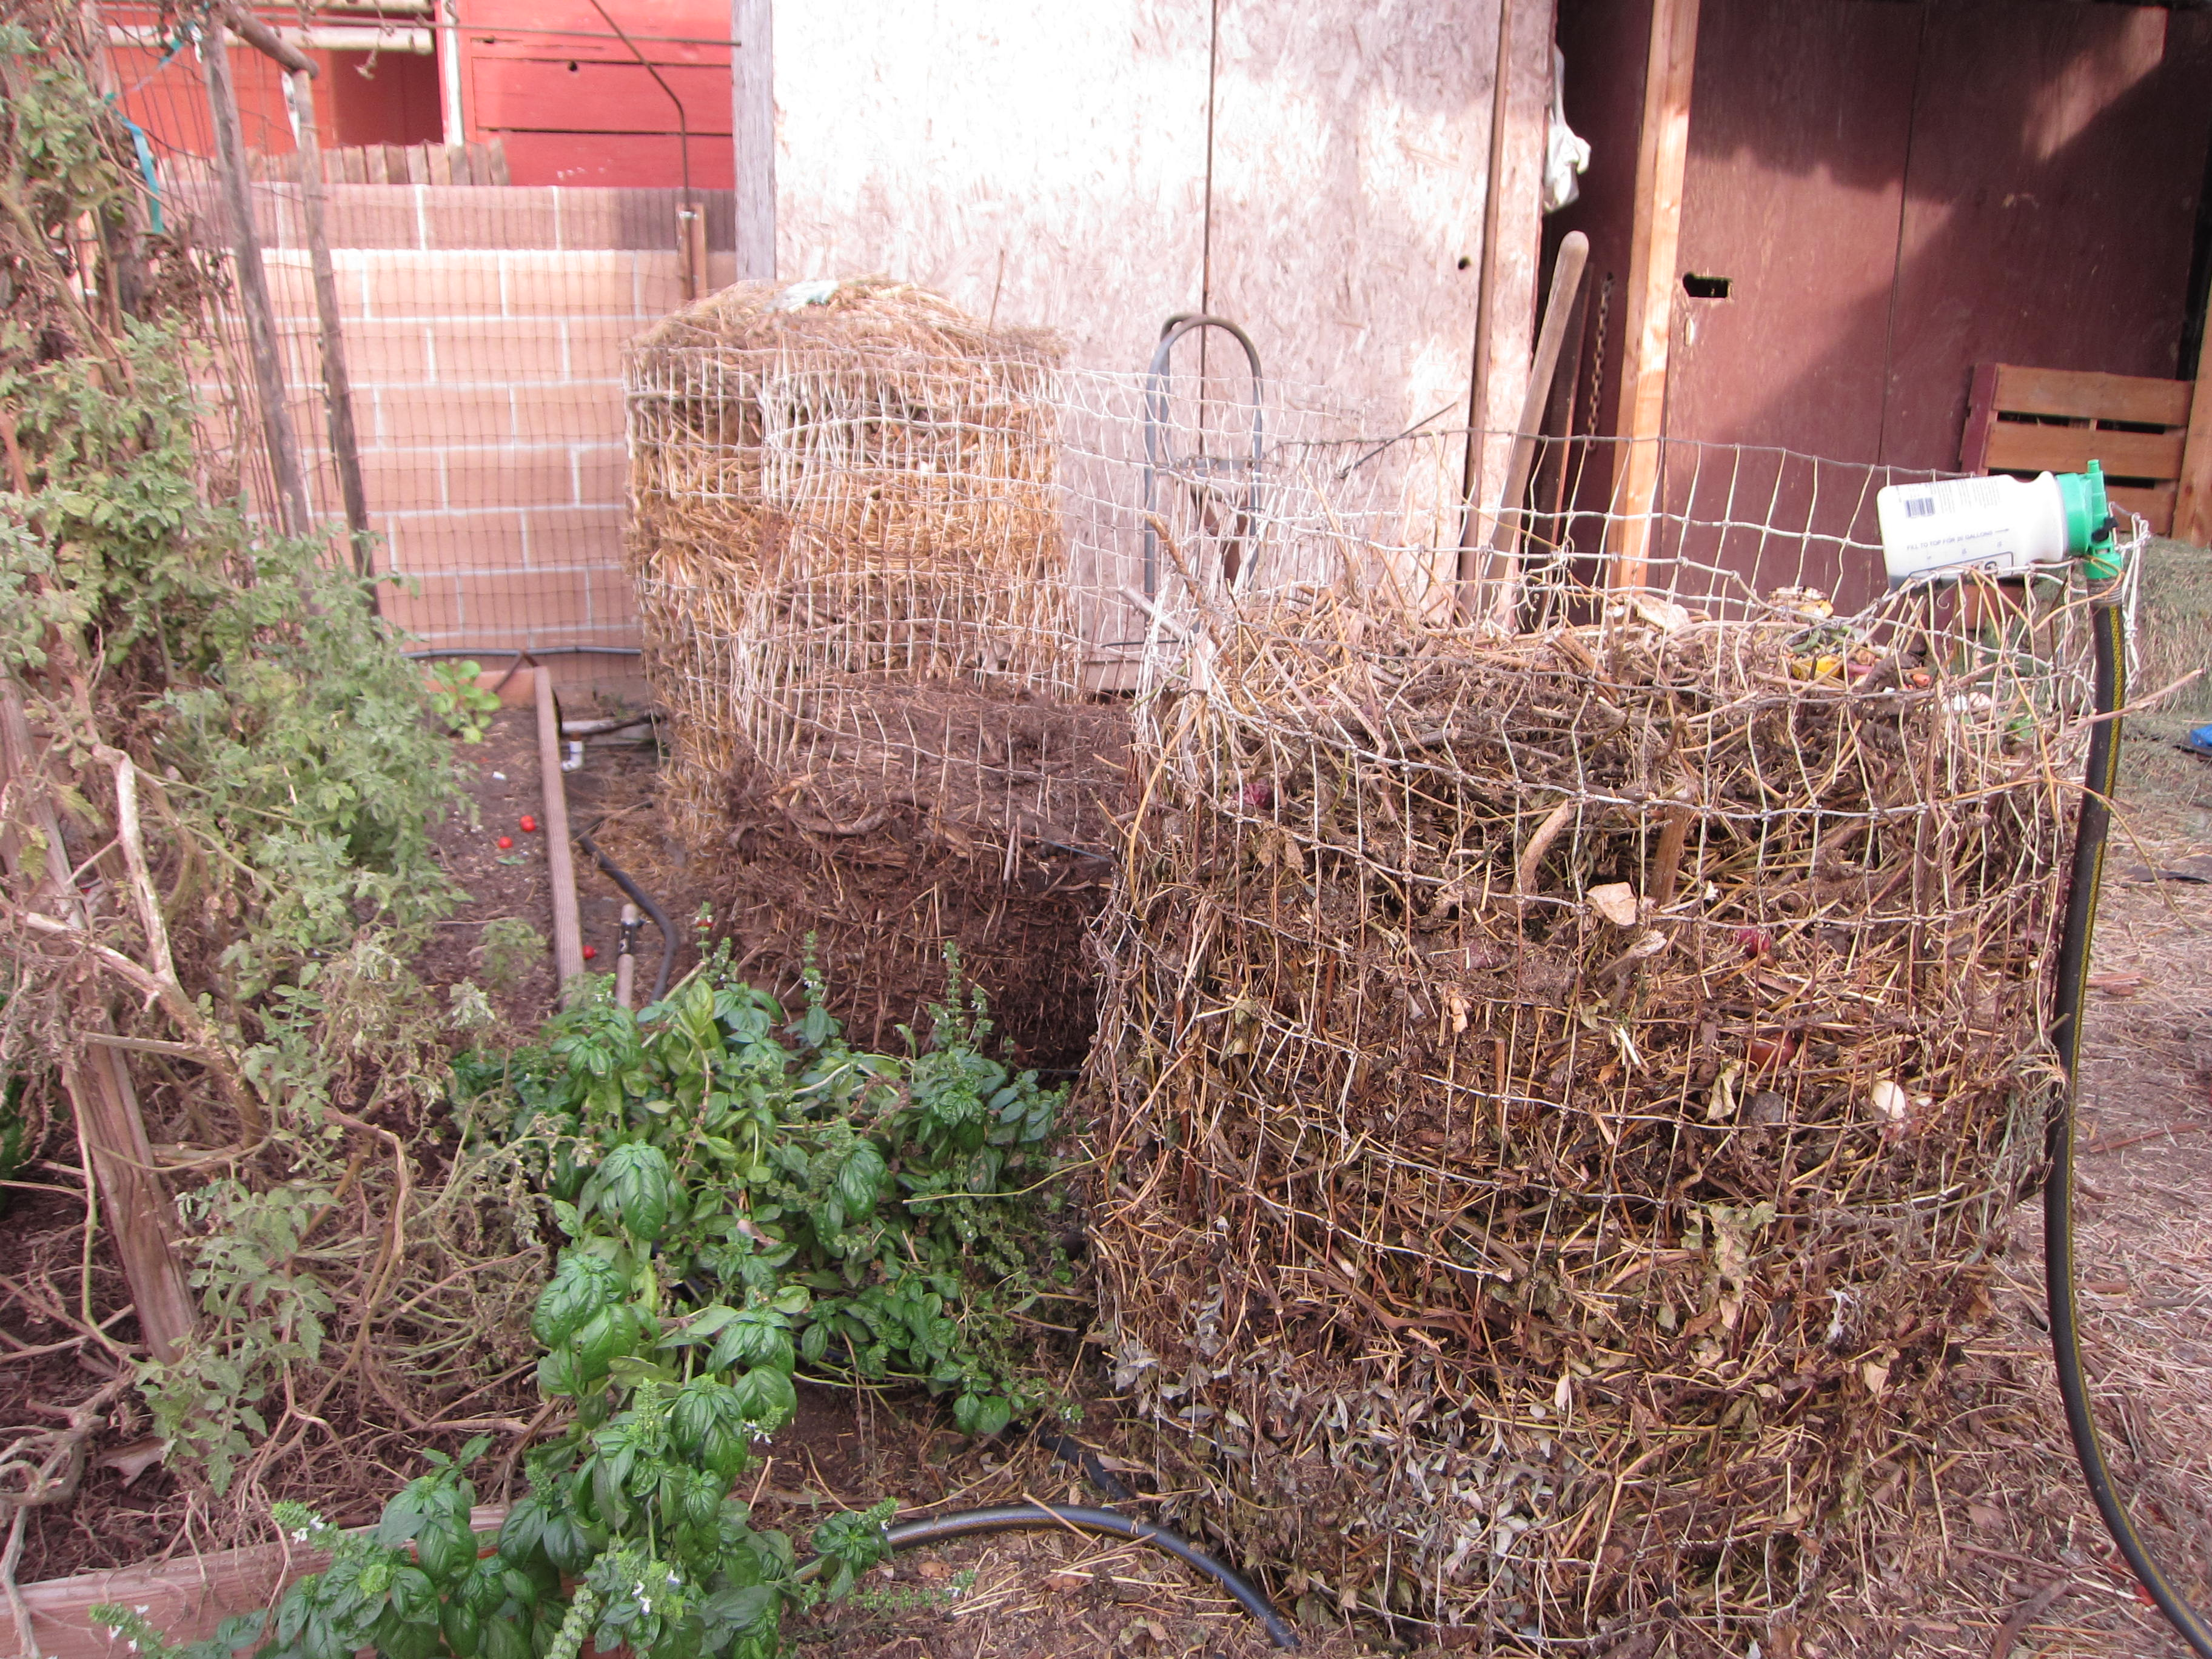 Compost is an important part of any homestead farm. They compost garden waste and manure from the horses and goats.